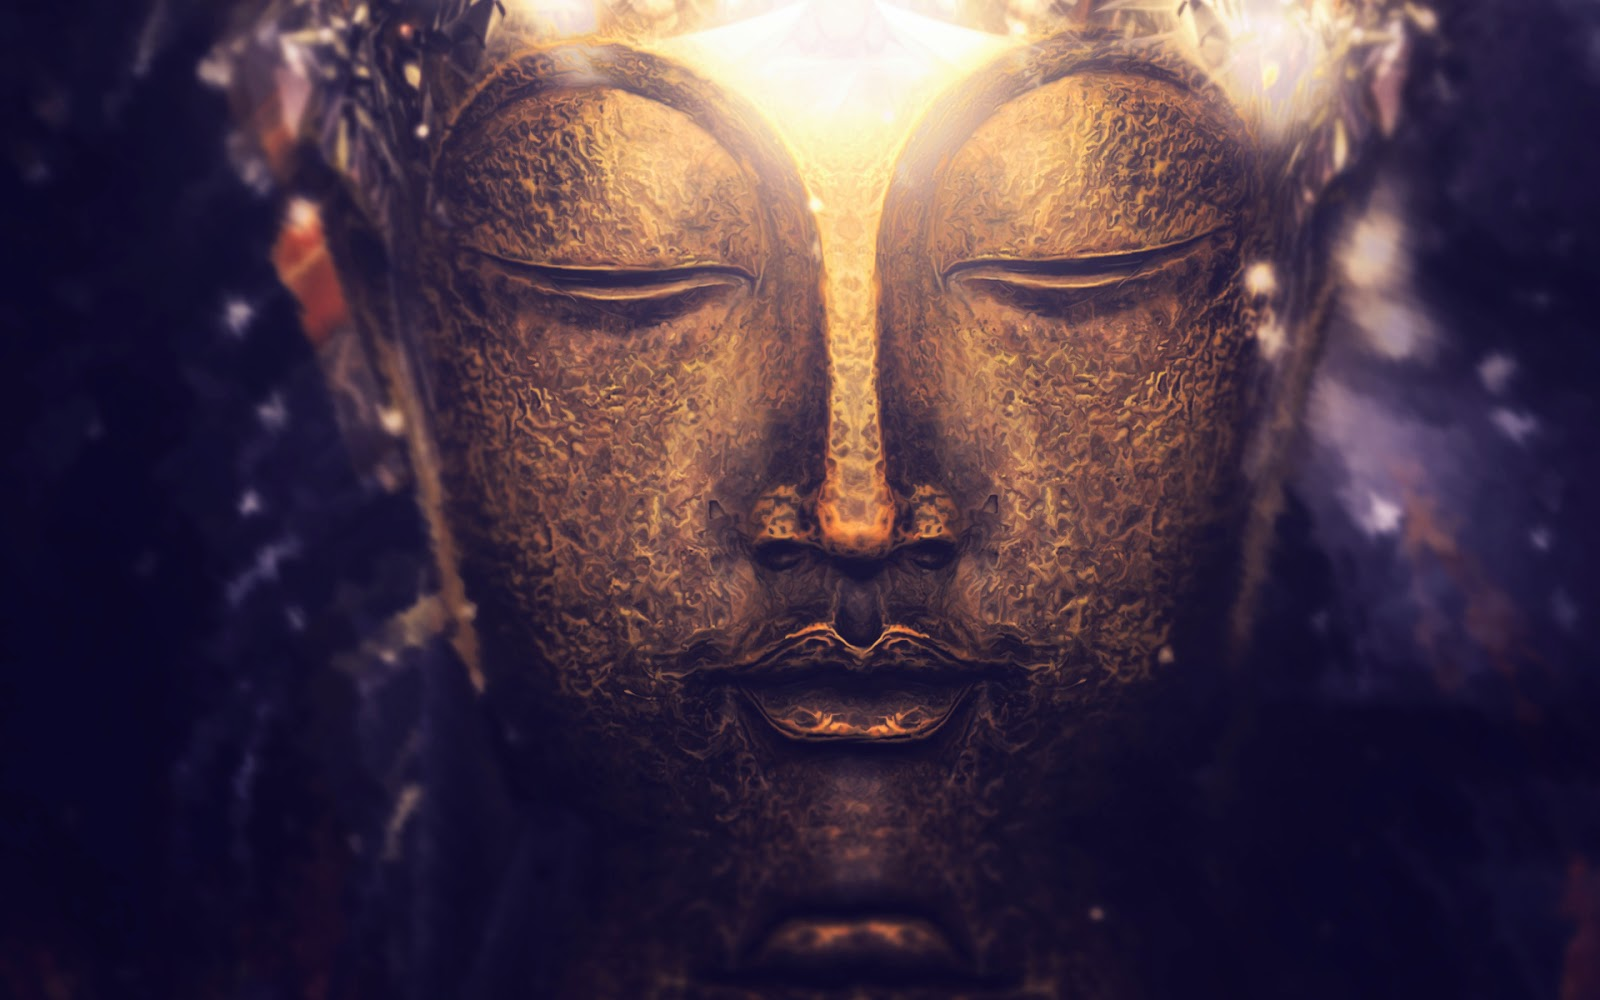 Buddha Painting Wallpaper